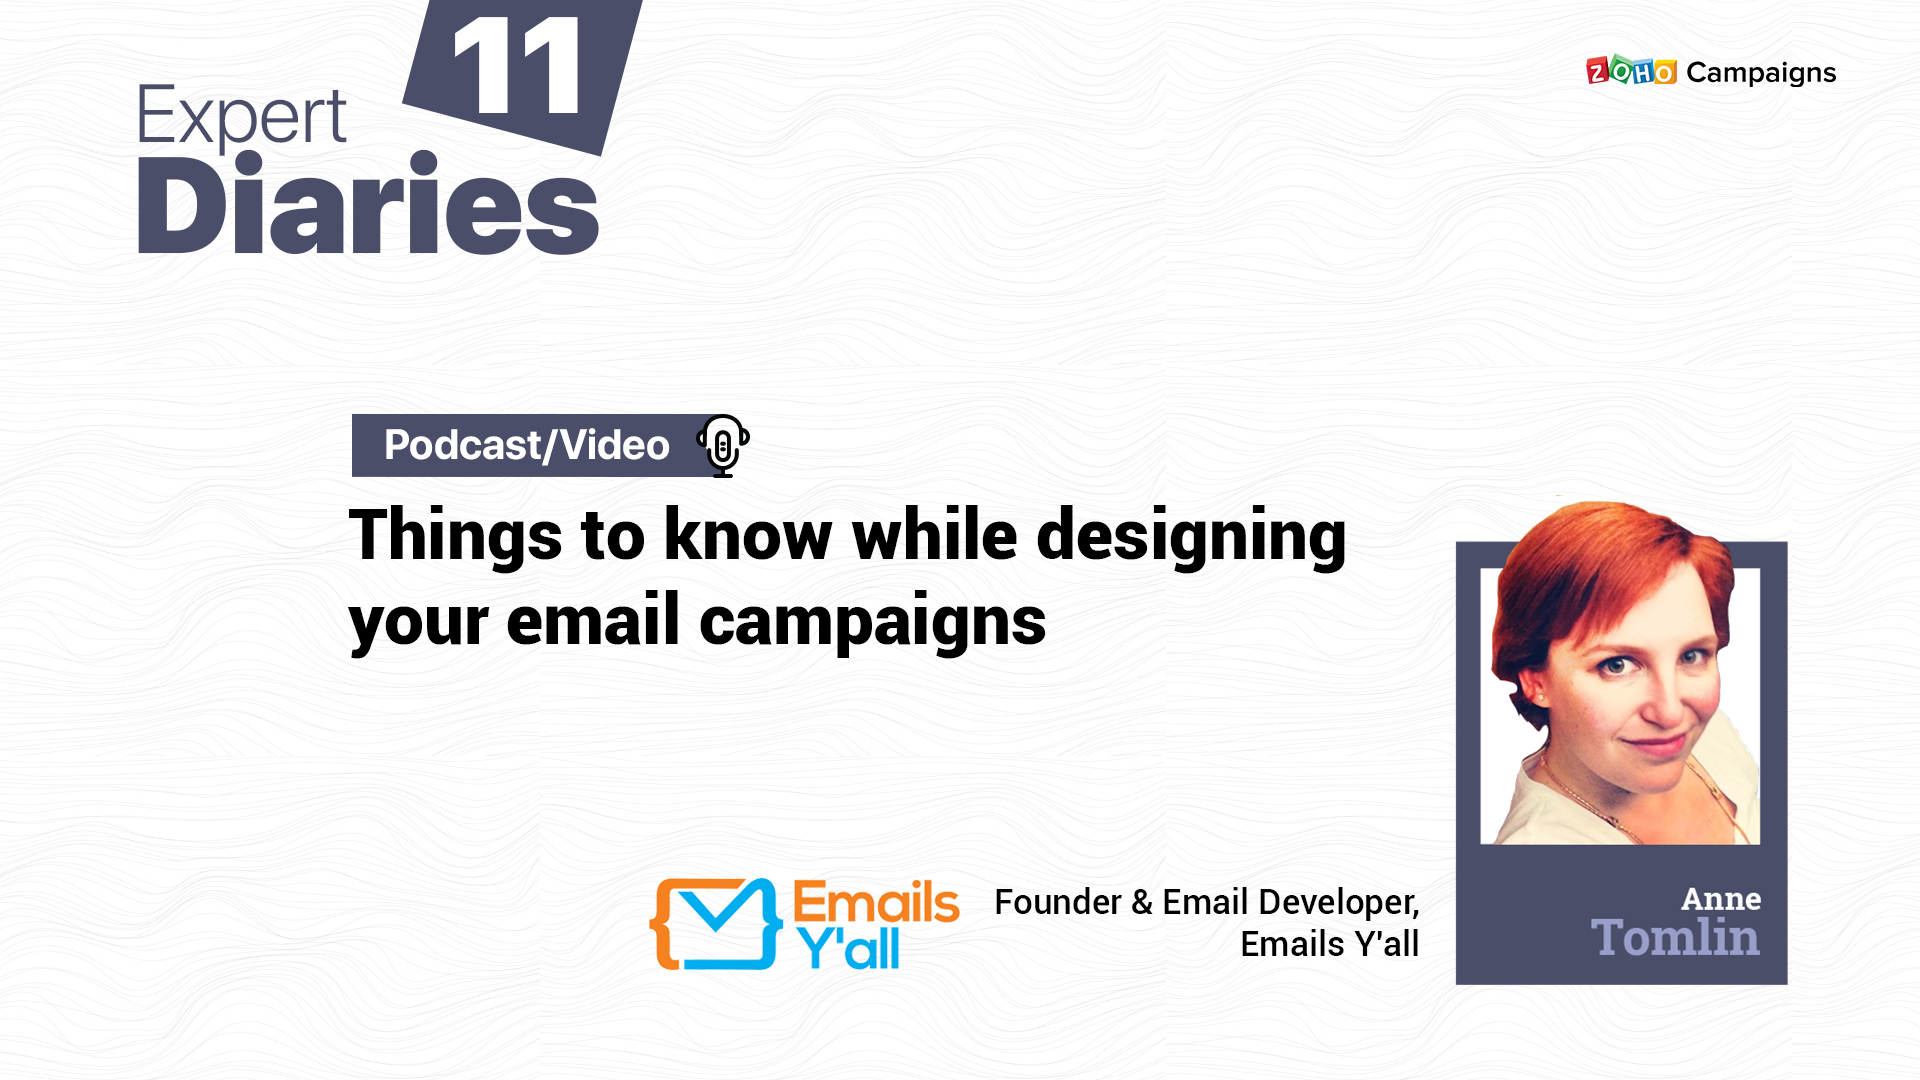 Things to know while designing your email campaigns